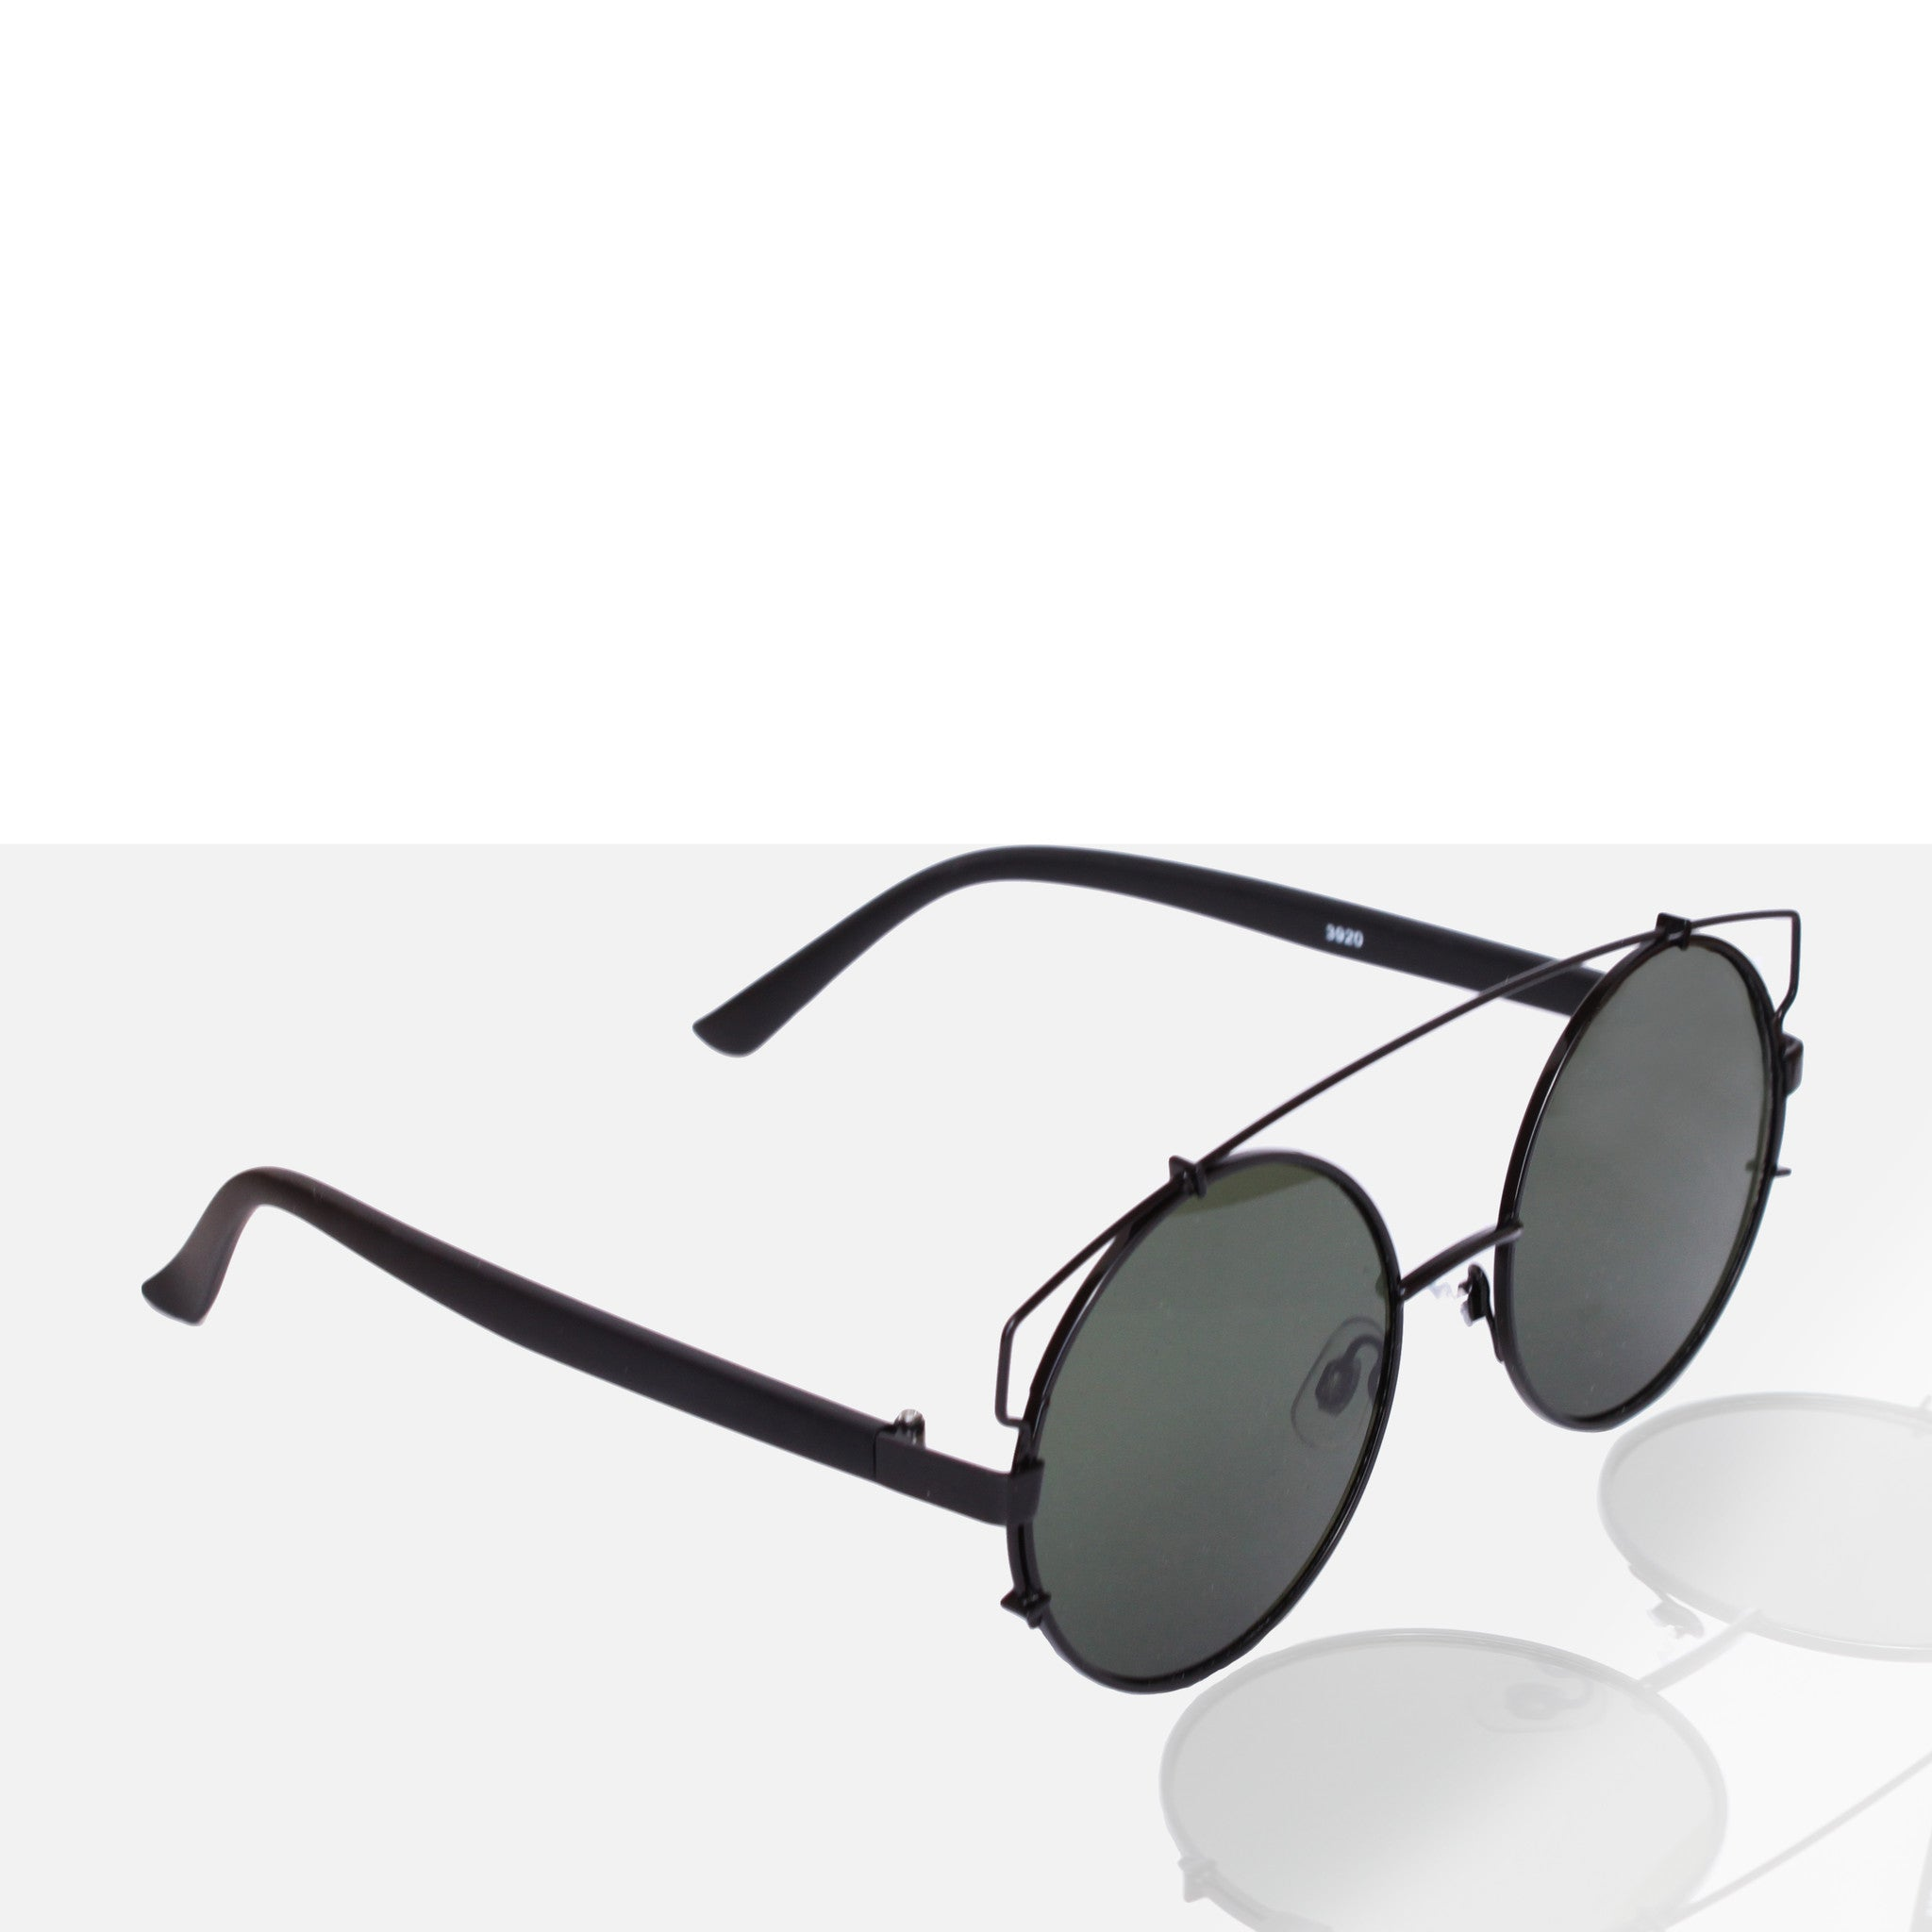 New York Wire Frame Sunglasses - Melie Bianco Handbags Accessories